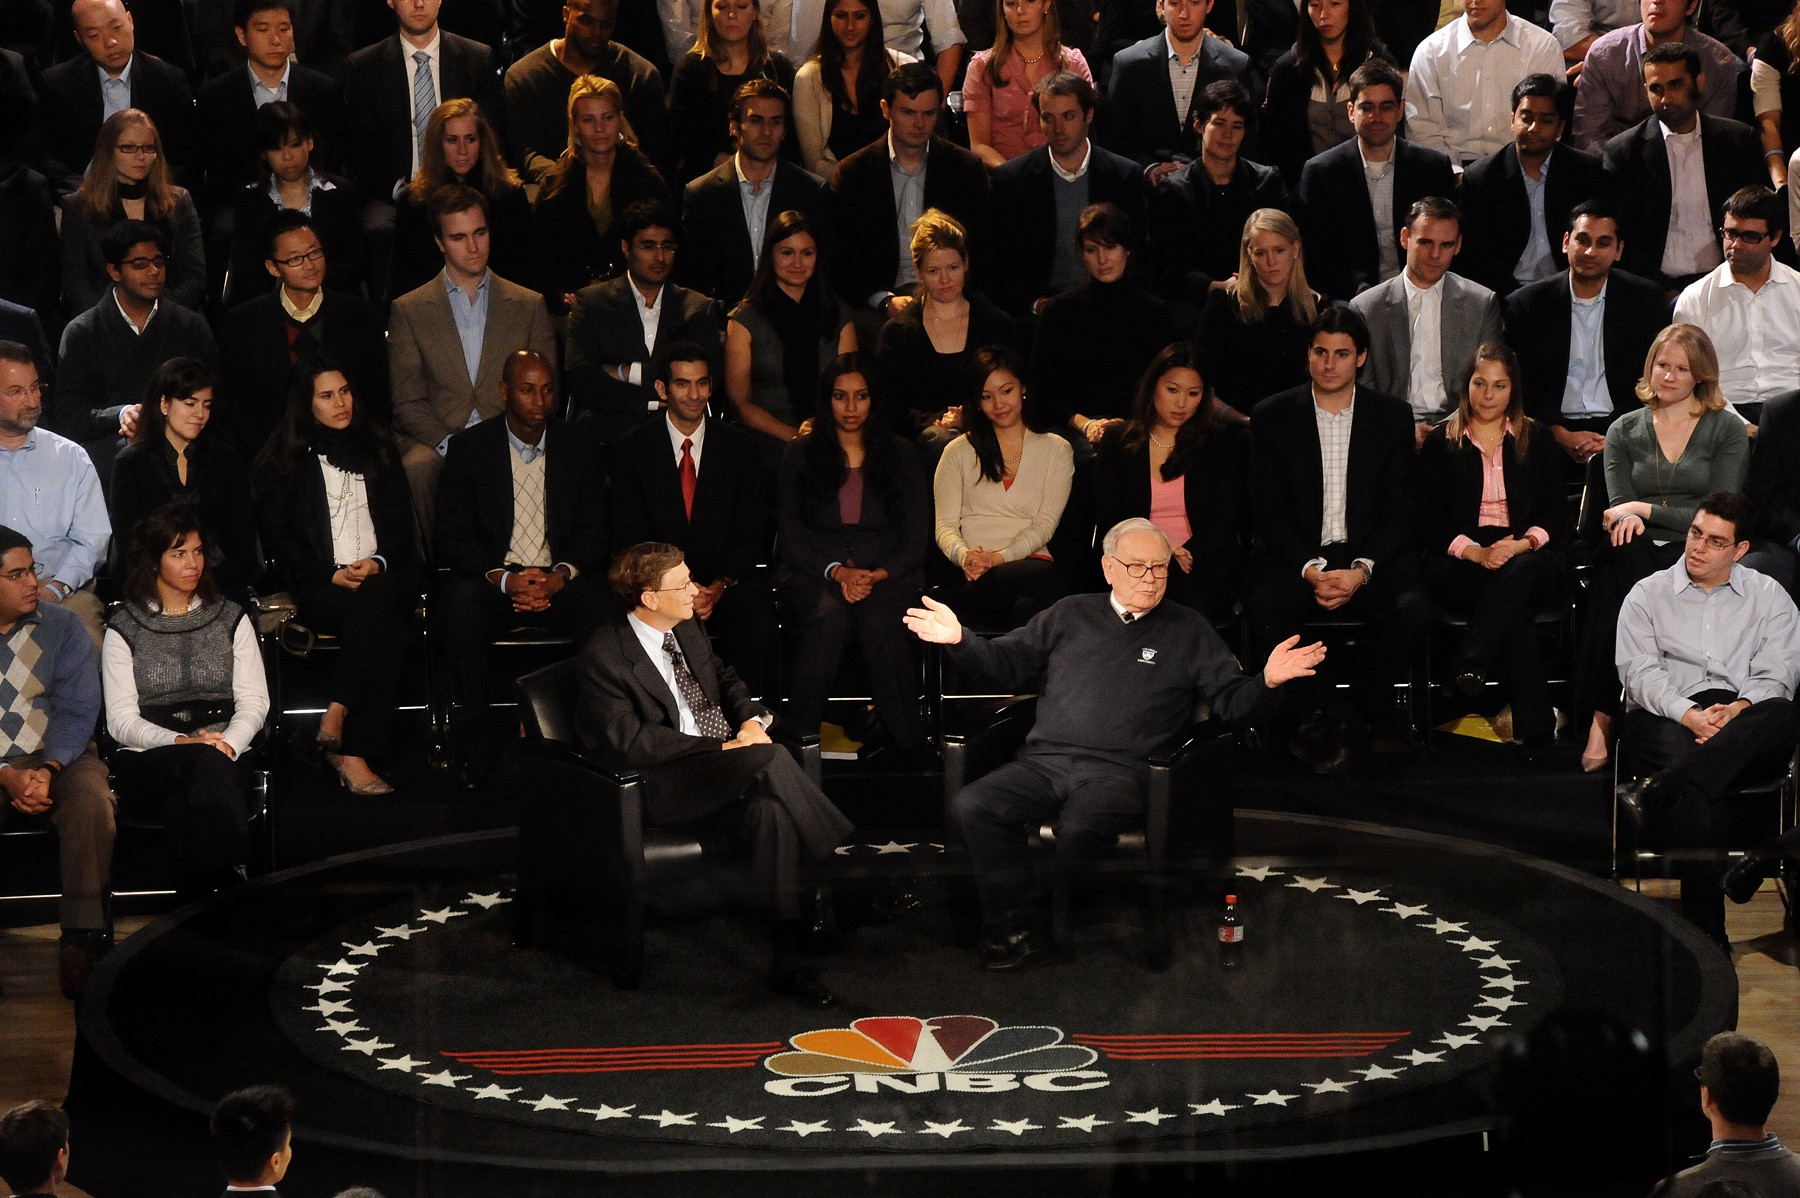 Bill Gates & Warren Buffett presenting as part of a panel at the World Leaders Forum